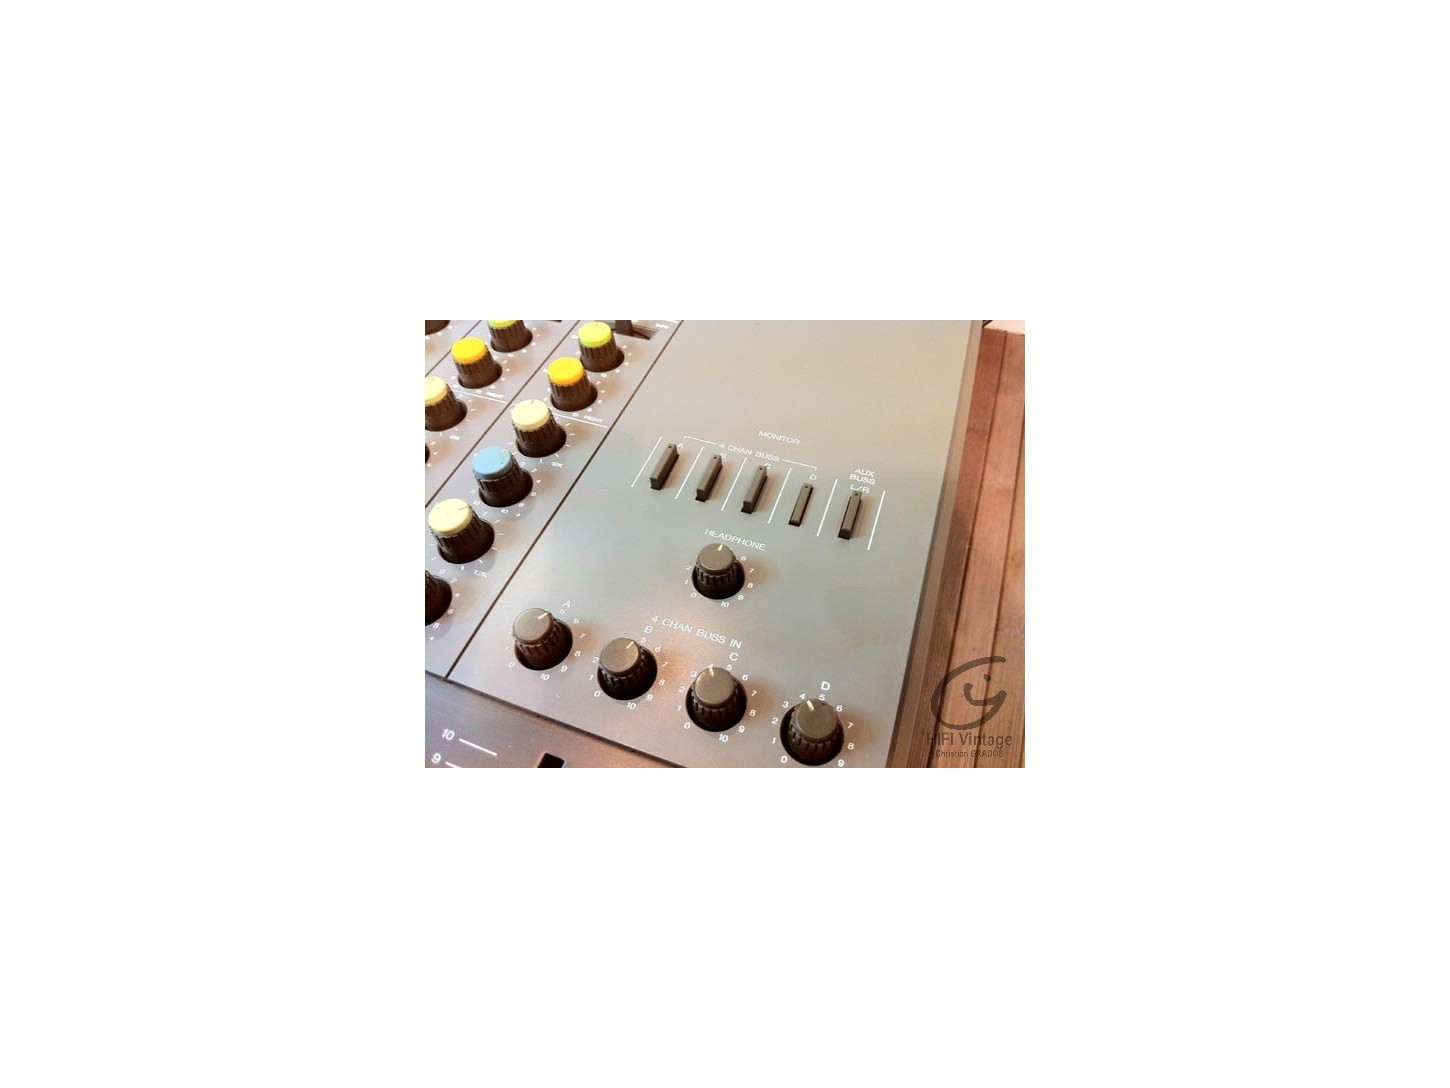 FOSTEX Model 350 Recording mixer et model 3060 meter bridge